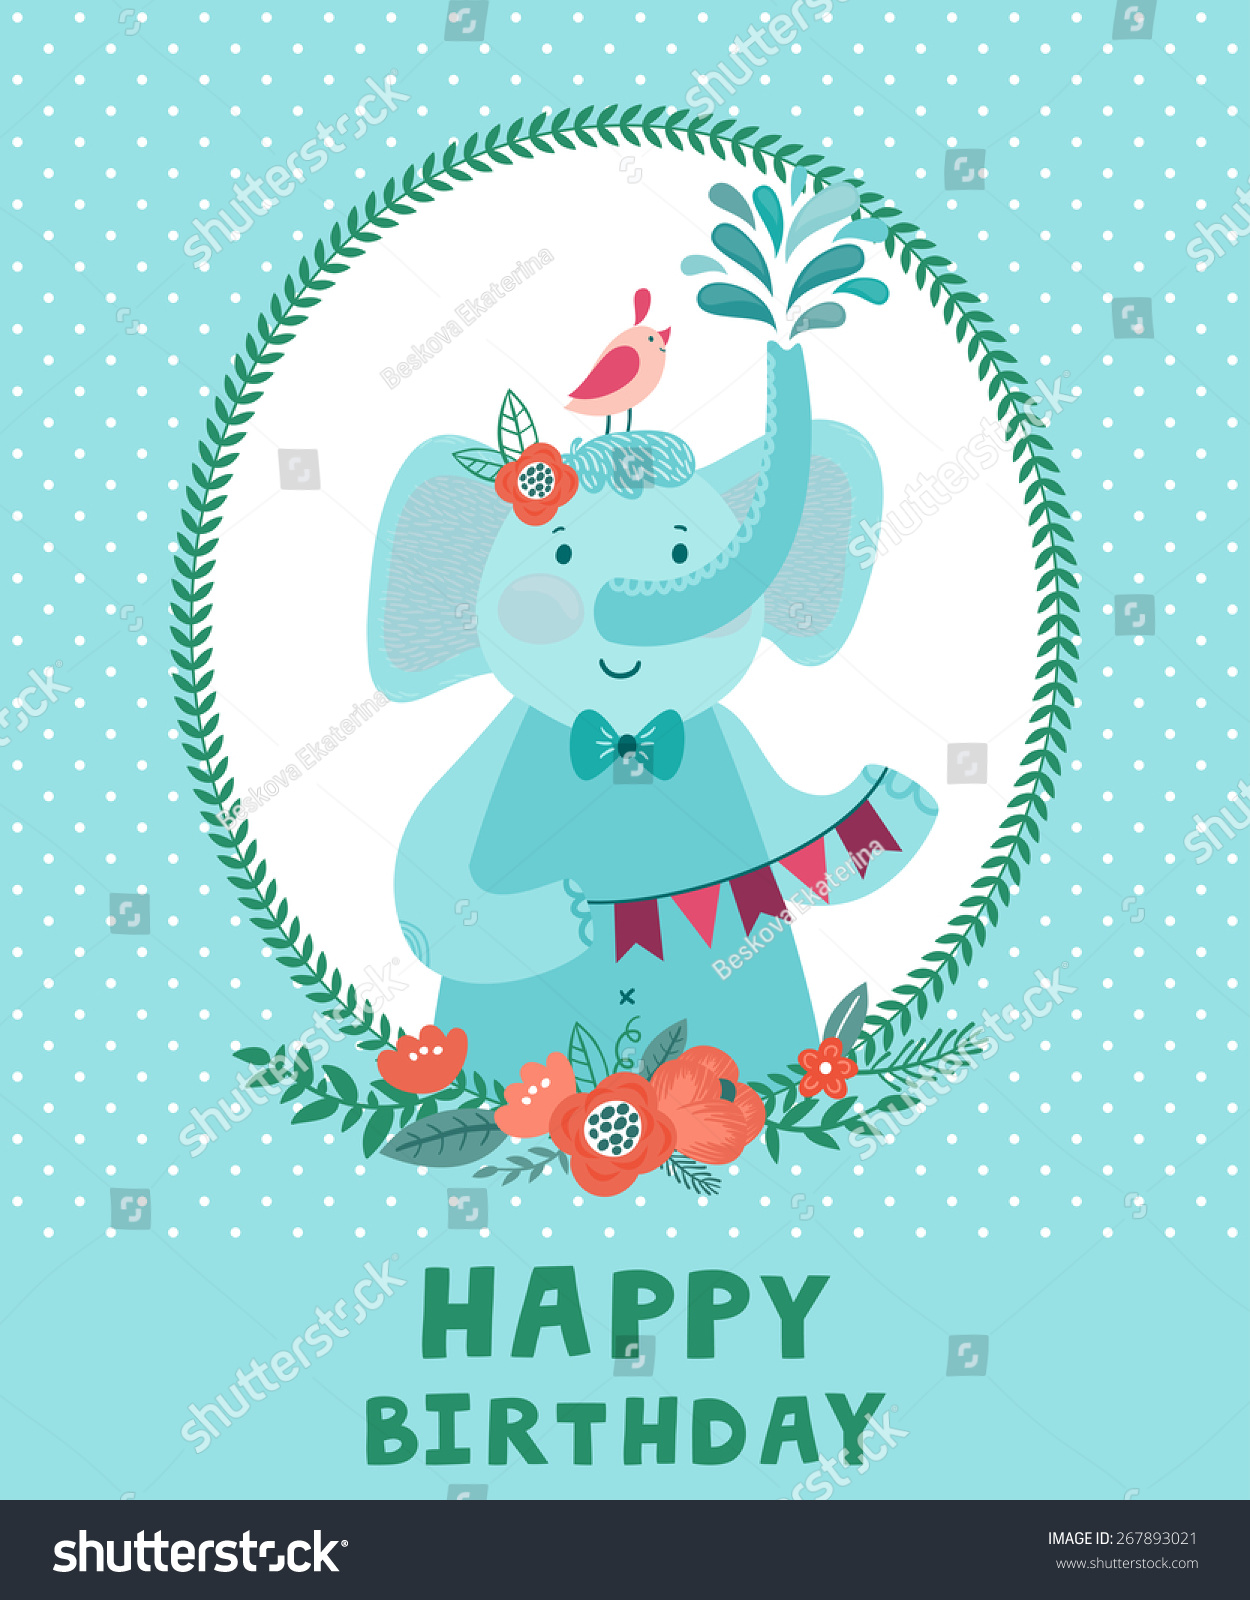 Vector Birthday Card With Cute Smiling Elephant And Bird Childish Background Cartoon Characters